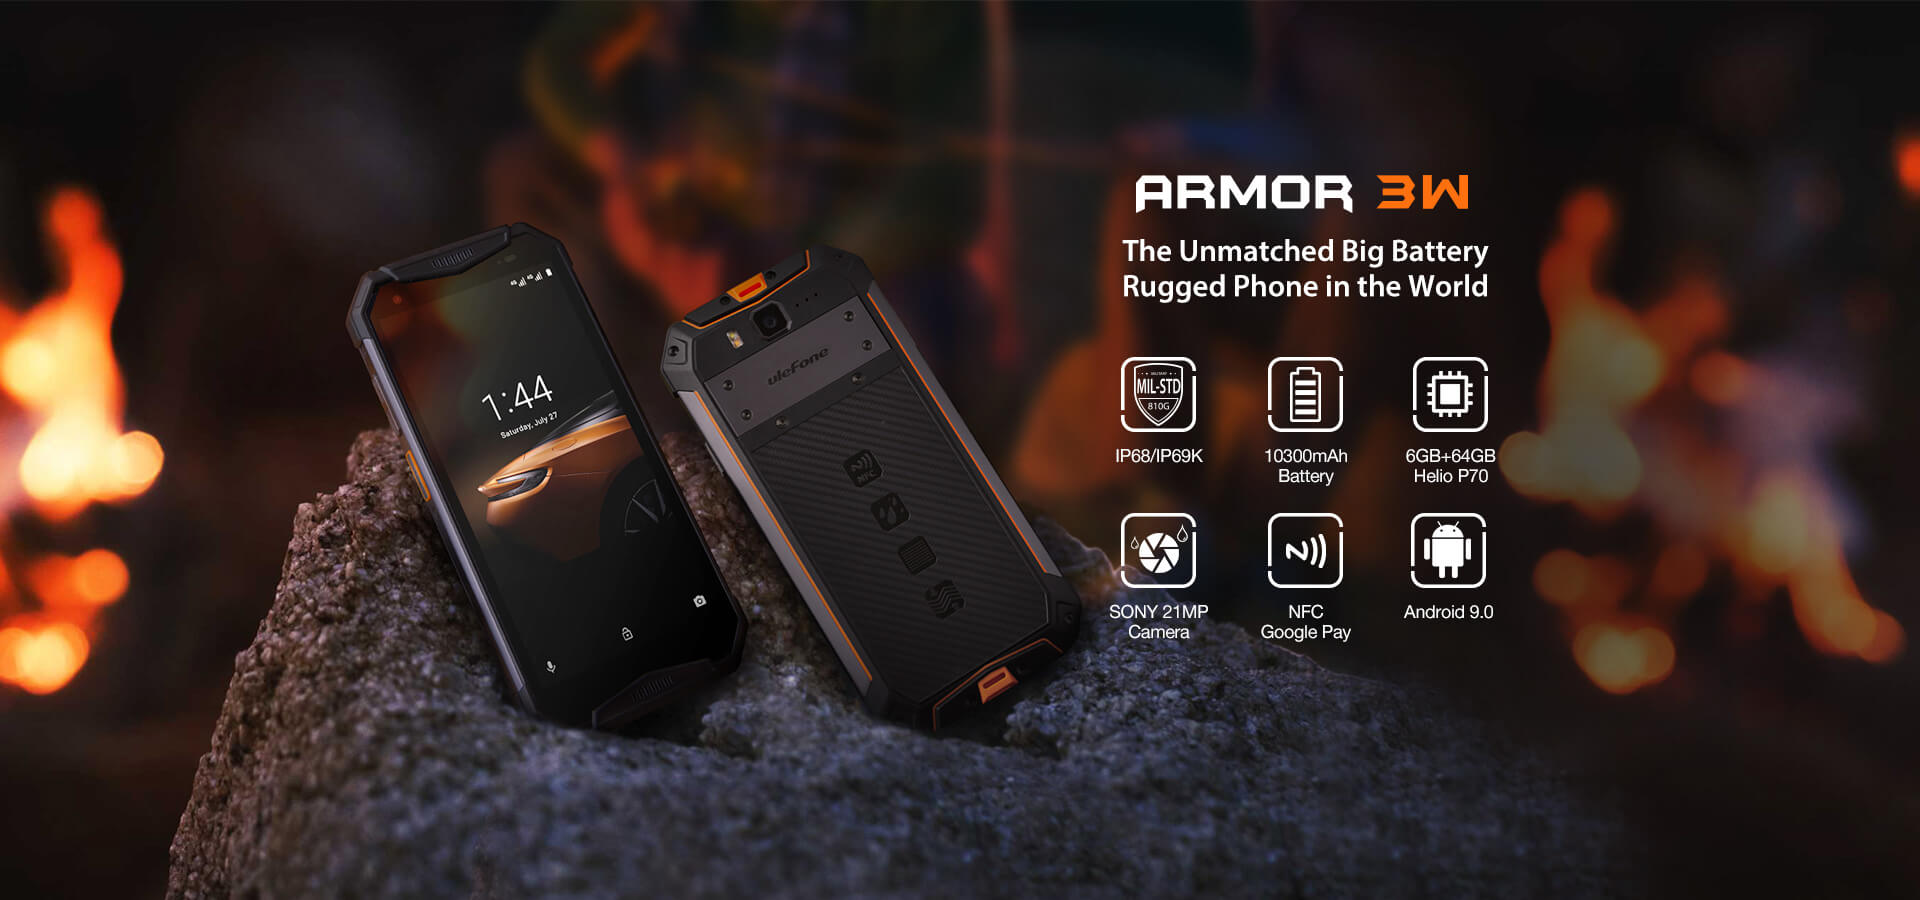 Rugged SA UleFone Armor 3W Rugged Android 9.0 Smartphone - 6GB RAM, 64GB, Dual-SIM, IP68